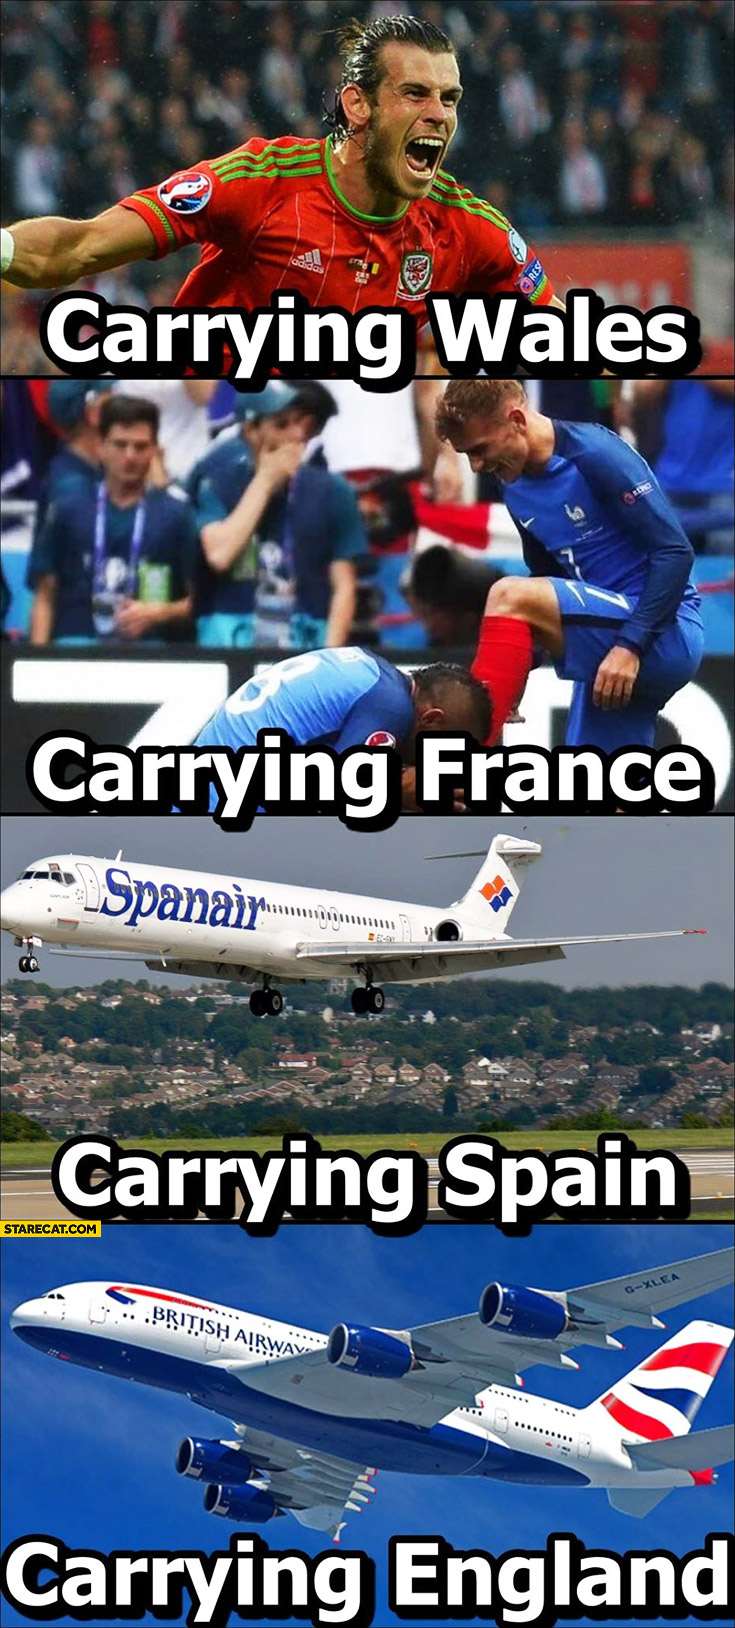 Gareth Bale carrying Wales, Griezmann carrying France, airplane carrying Spain and England Euro 2016 fail